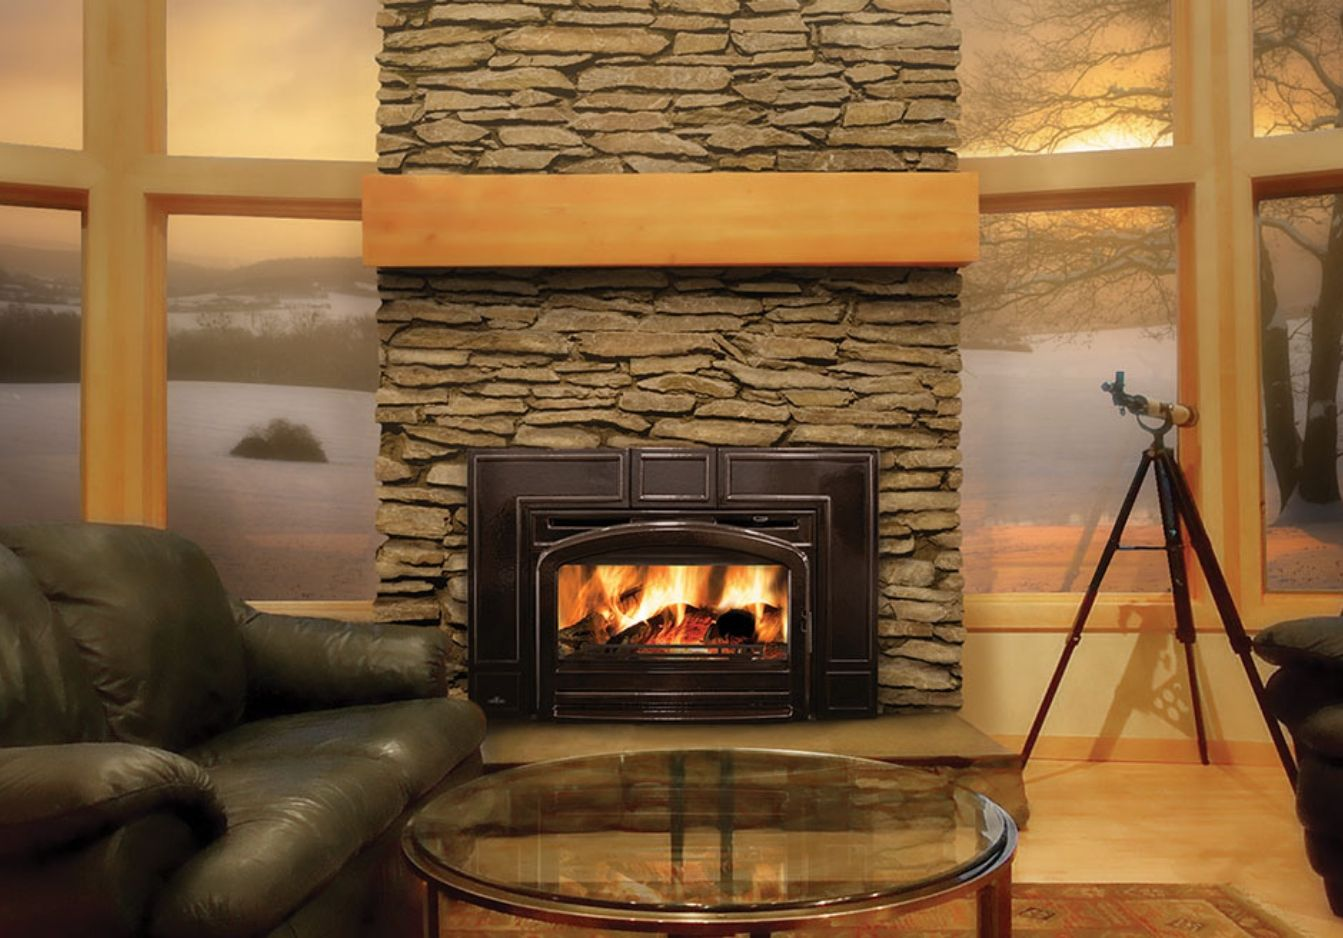 View our full line of wood burning fireplace inserts at Fireplace Doors Online